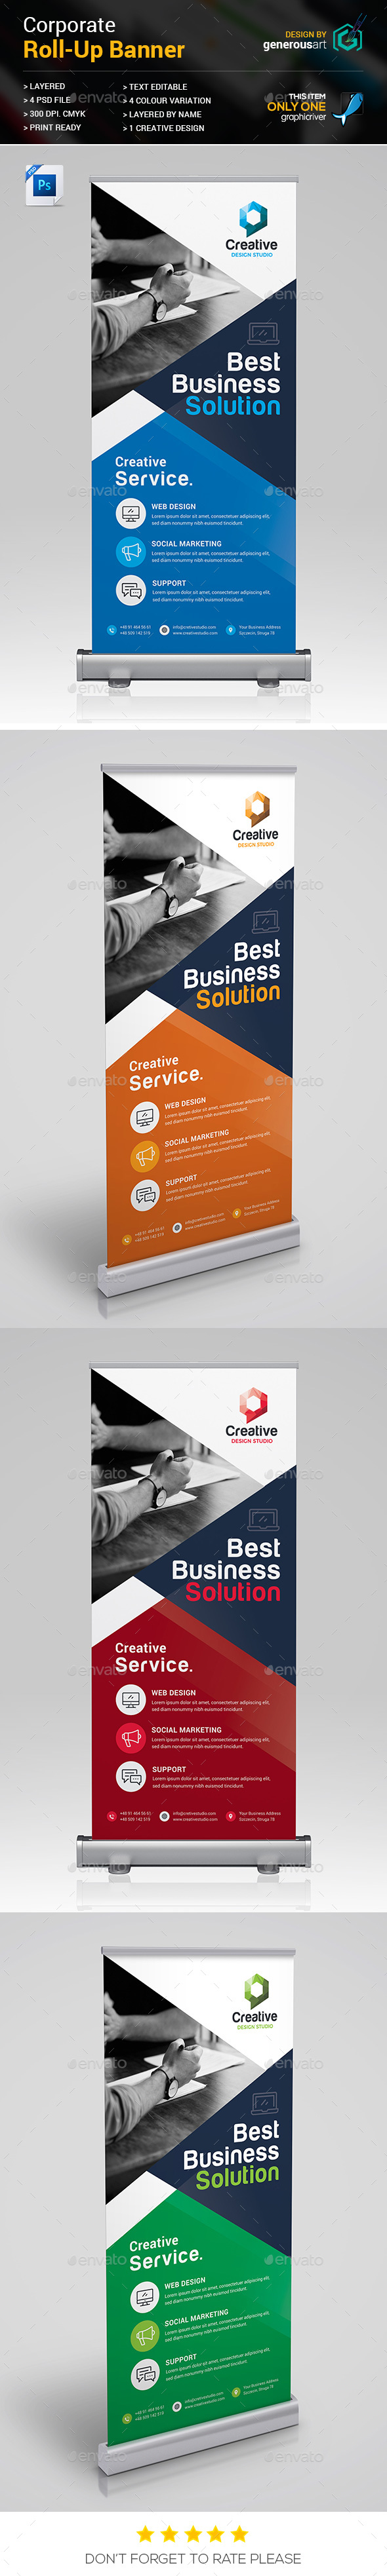 GraphicRiver Roll-Up Banner 21062679